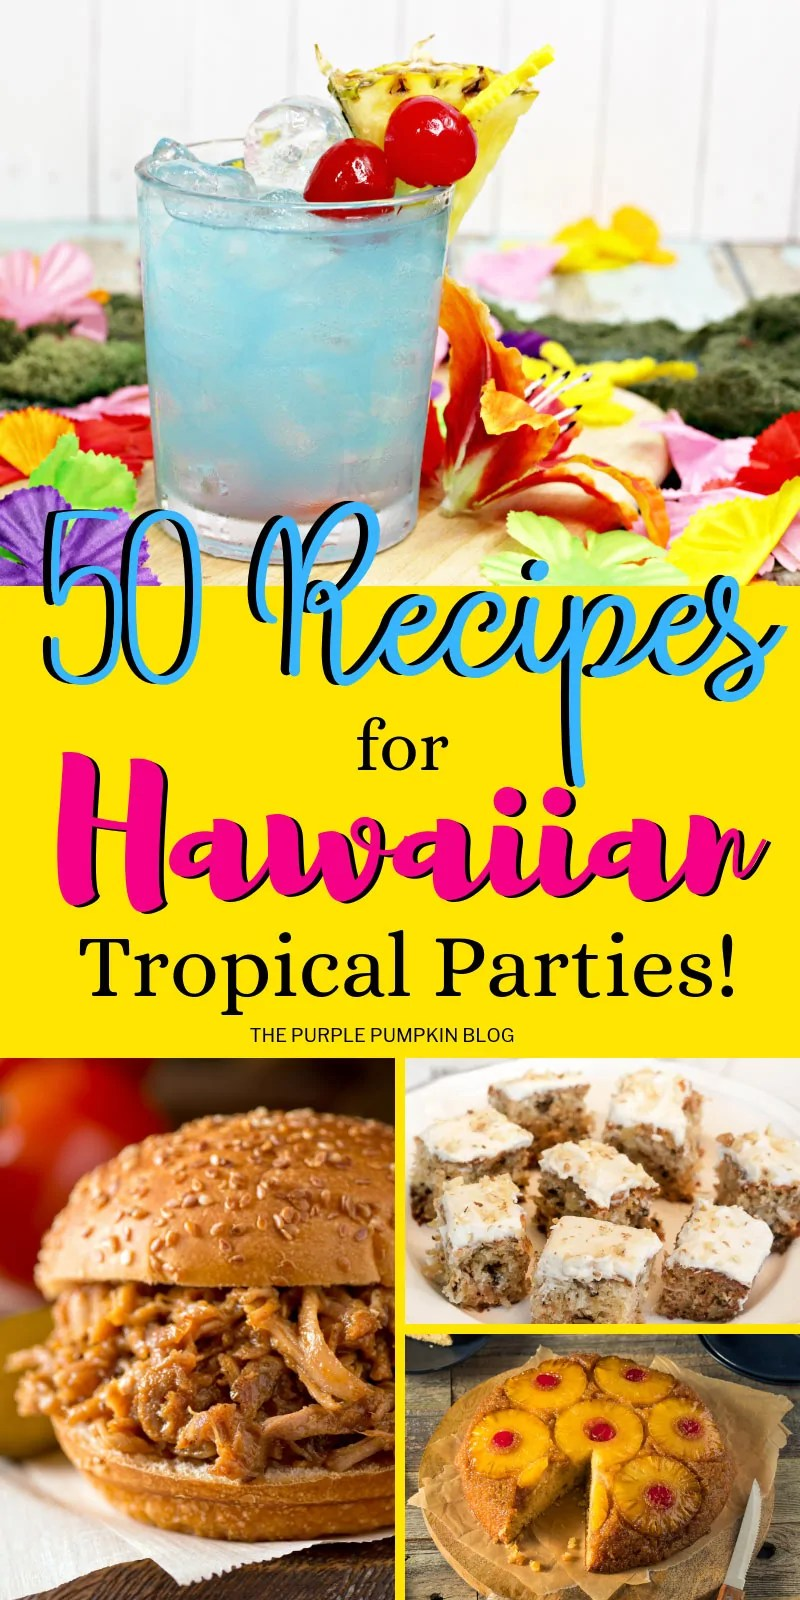 A collage of Hawaiian party food recipes for Hawaiian tropical parties